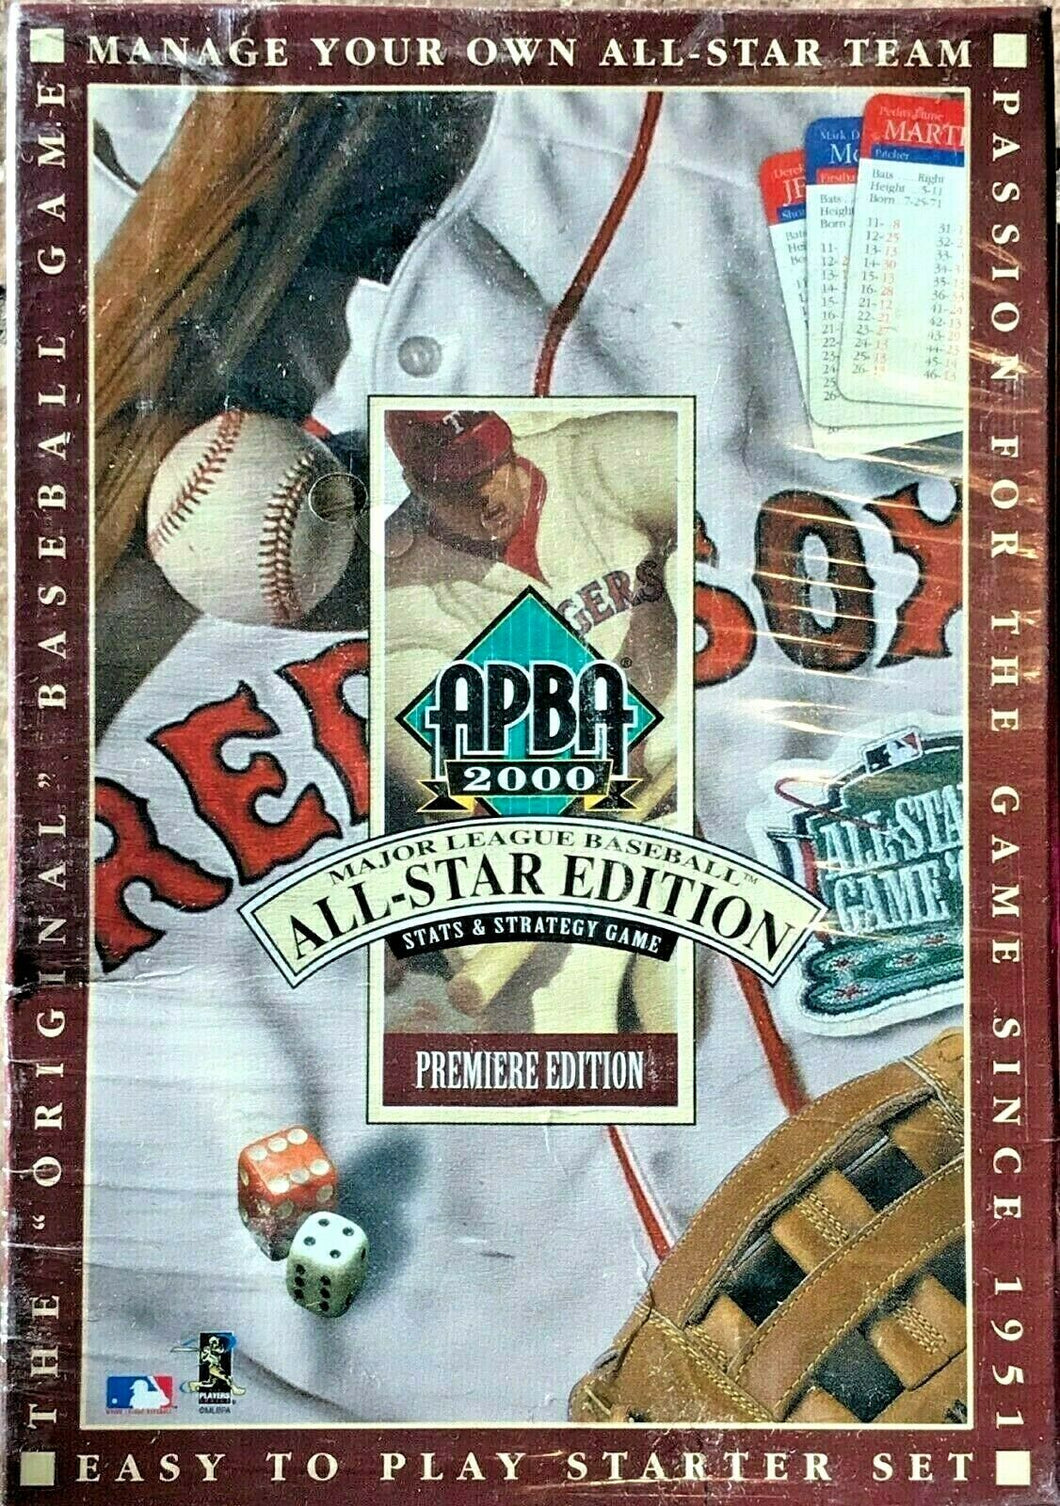 APBA 2000 MLB All-Star Edition Stats & Strategy Game Premiere Edition Sealed